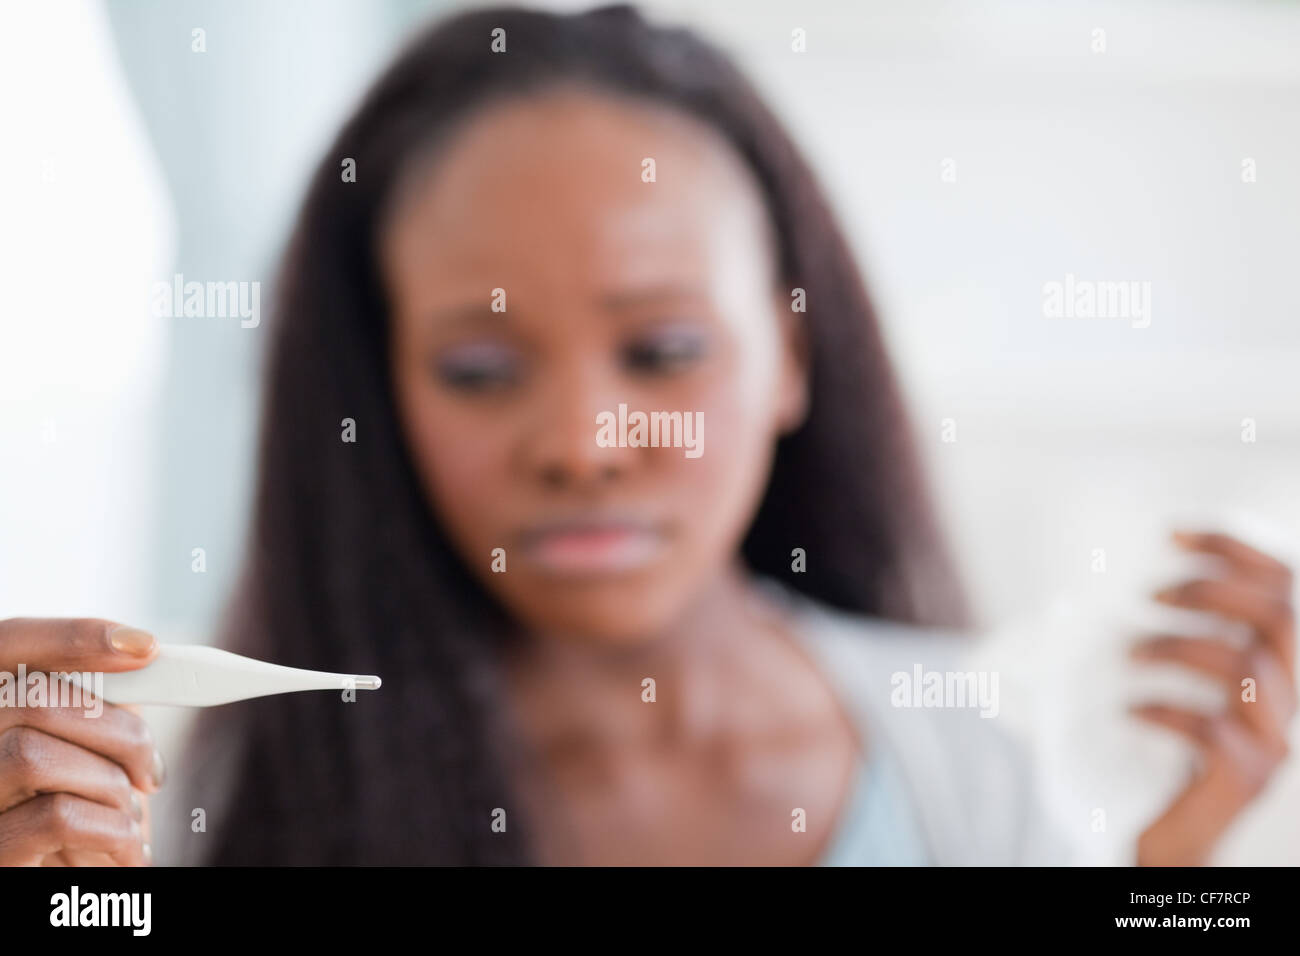 Close up of thermometer being used by woman - Stock Image